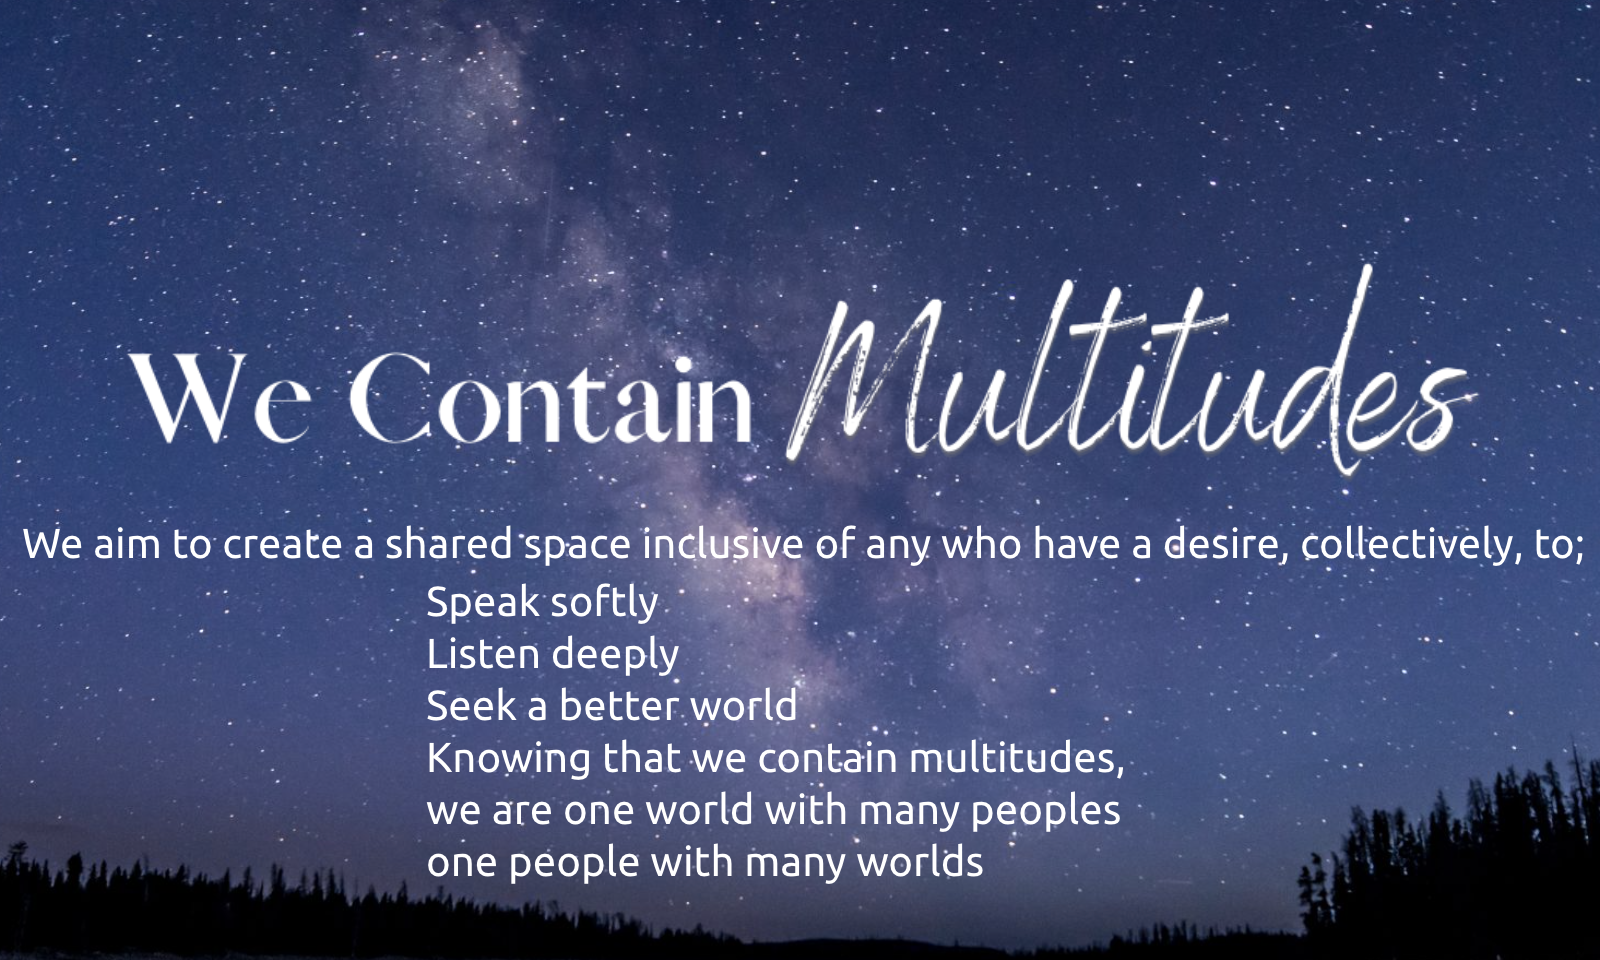 We Contain Multitudes commit to change through conversation